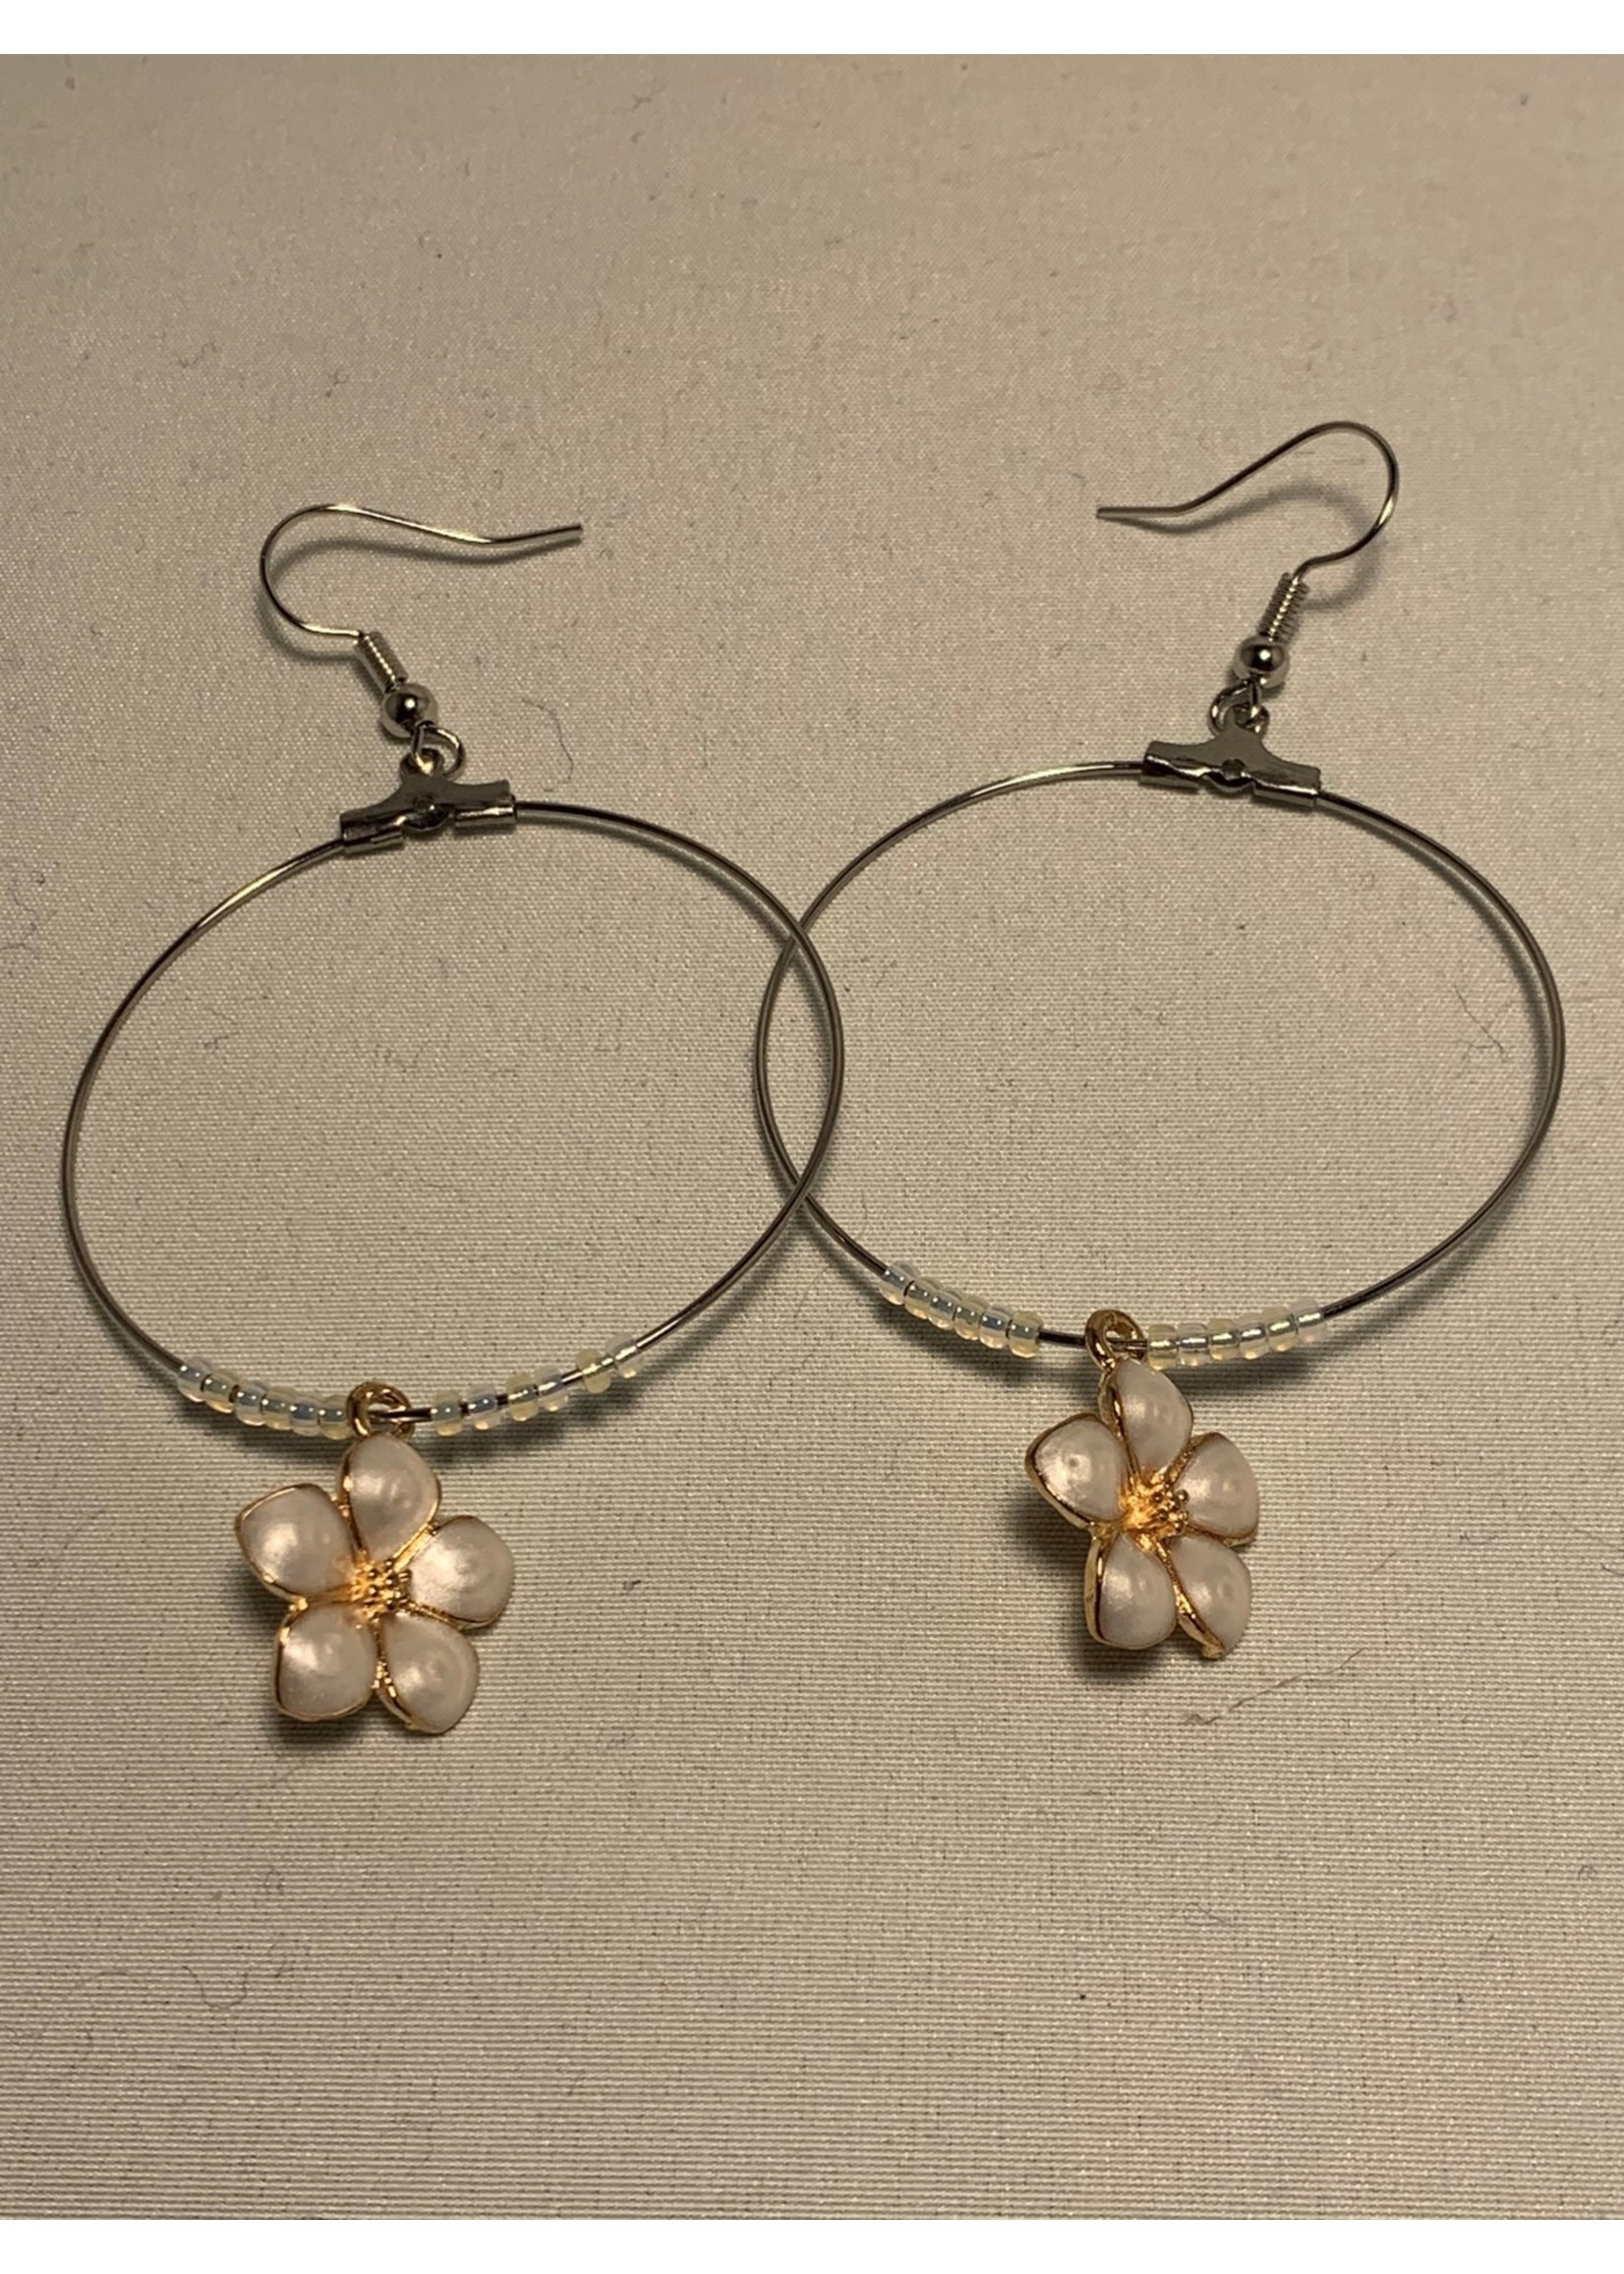 Large Hoop Earrings Pearl White Flowers with Gold Lined Pearl Beads